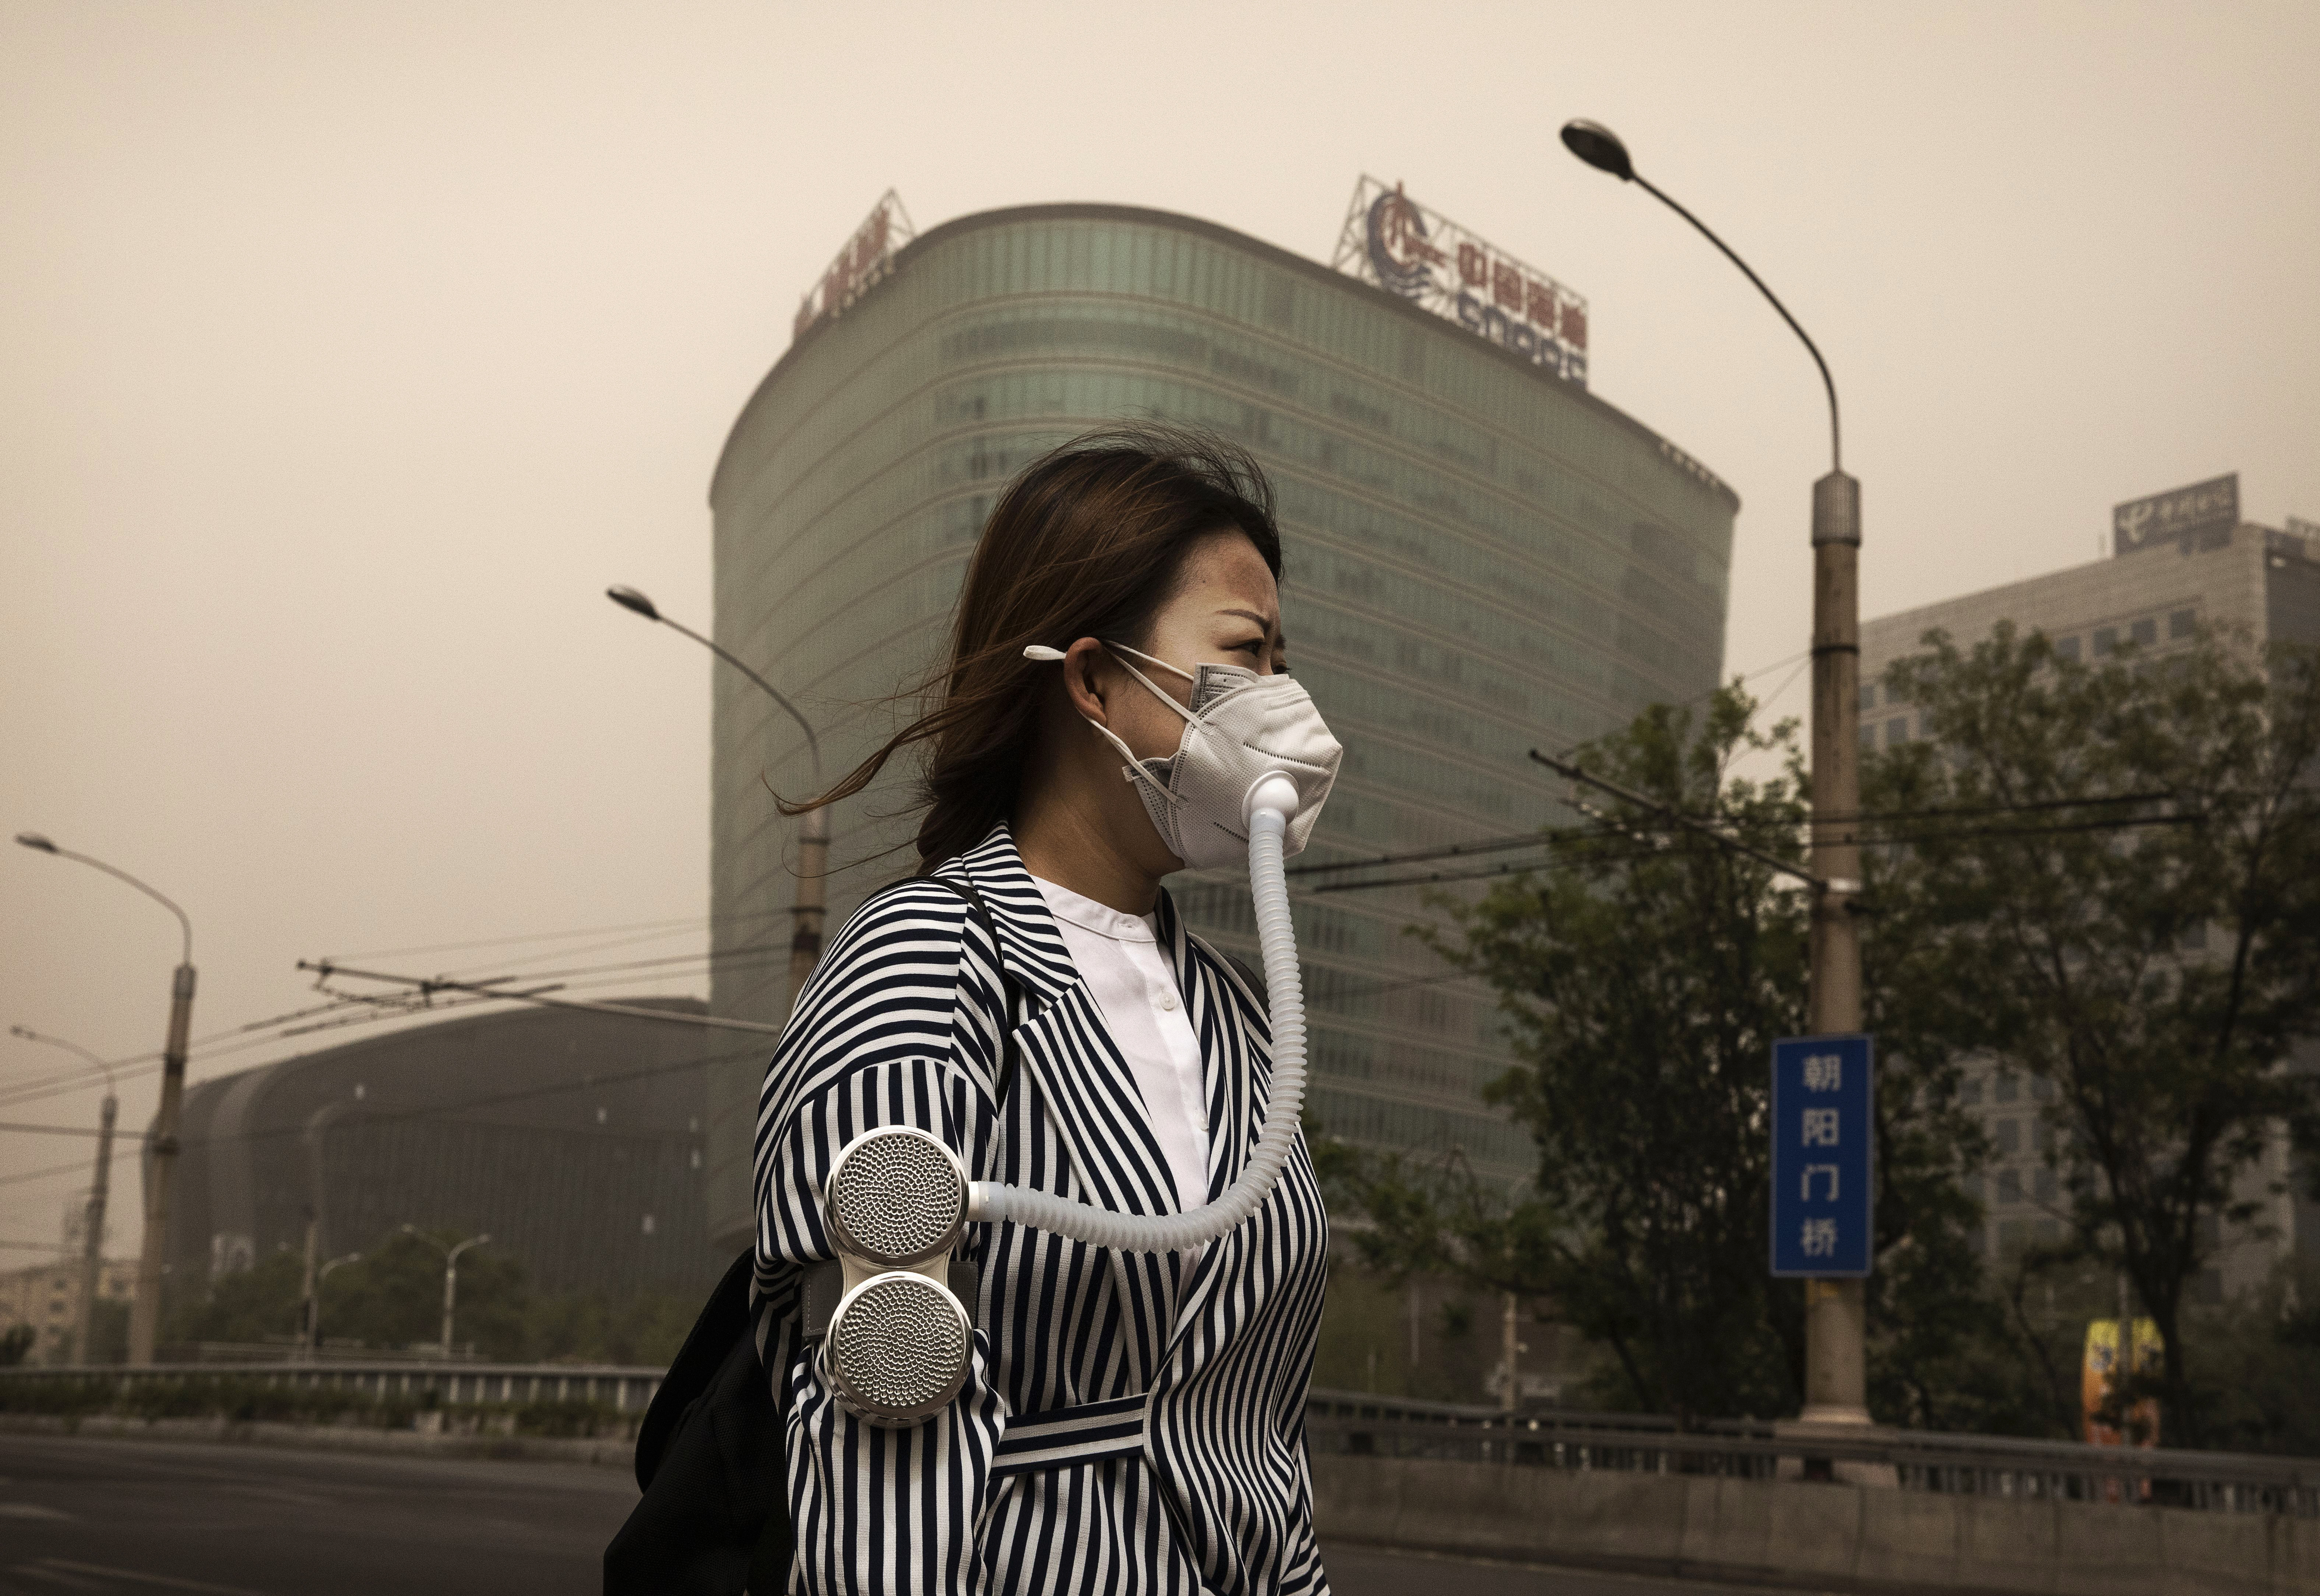 A Chinese woman wears a mask to protect from particles blown in during a sandstorm as she walks in the street on May 4, 2017 in Beijing, China.